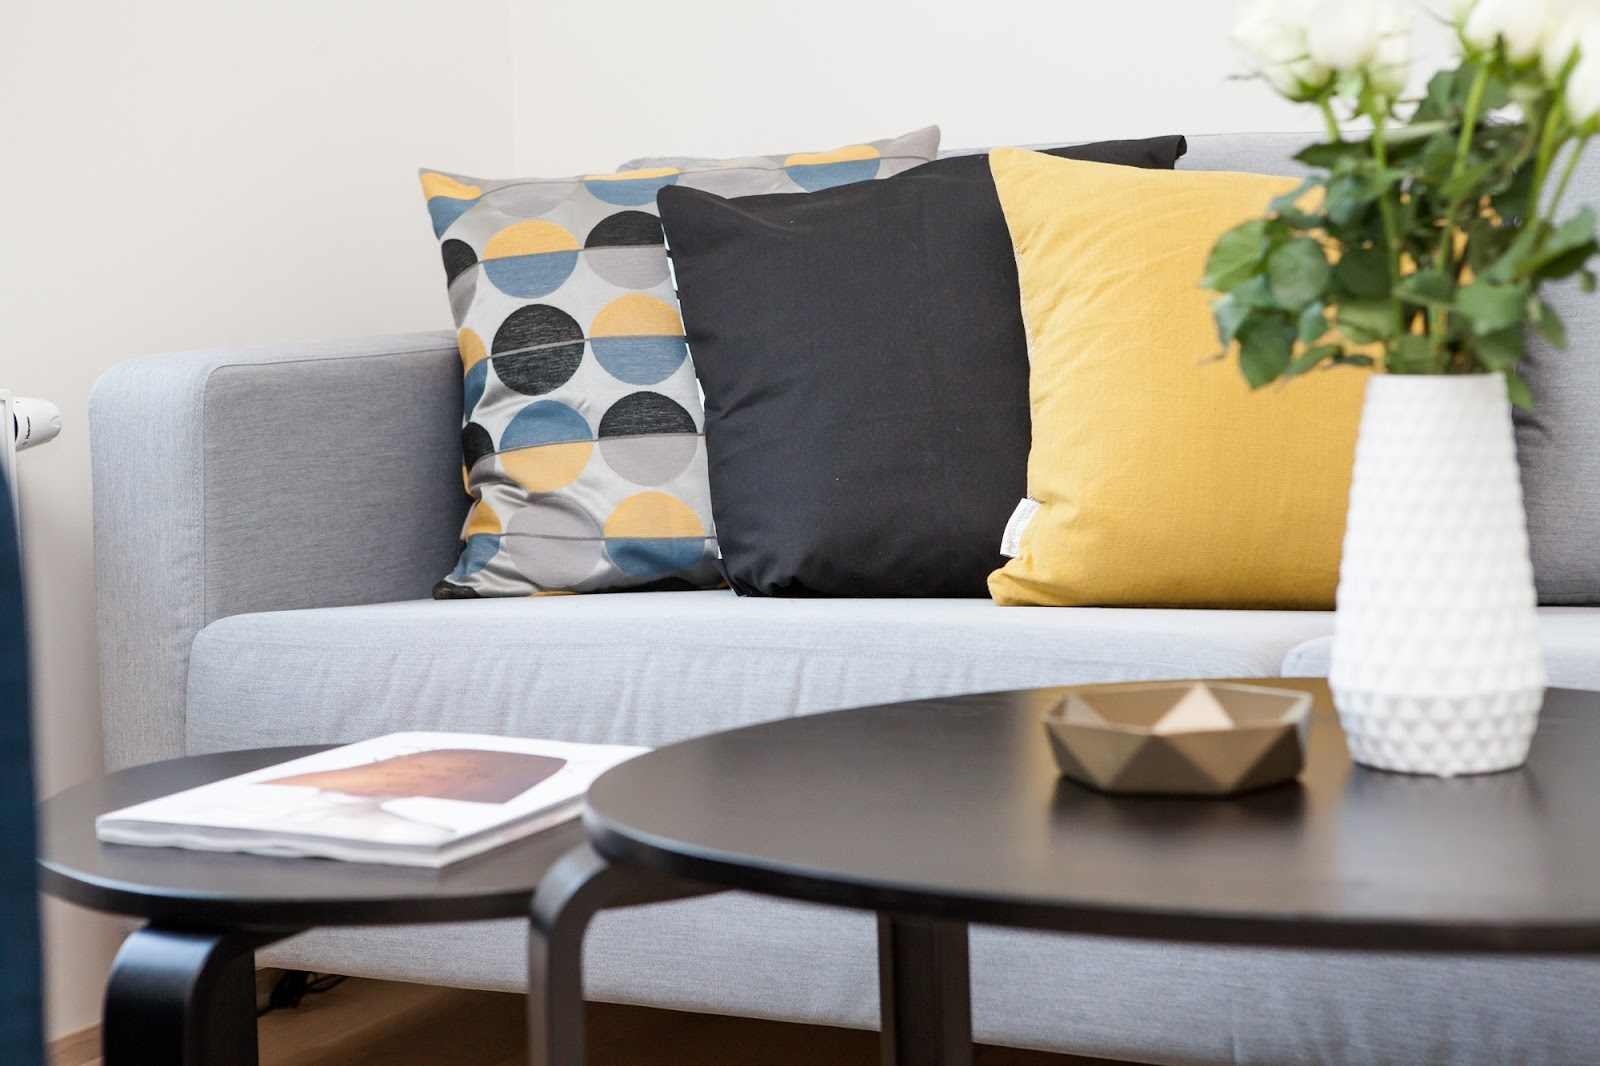 What to buy first when furnishing a new home